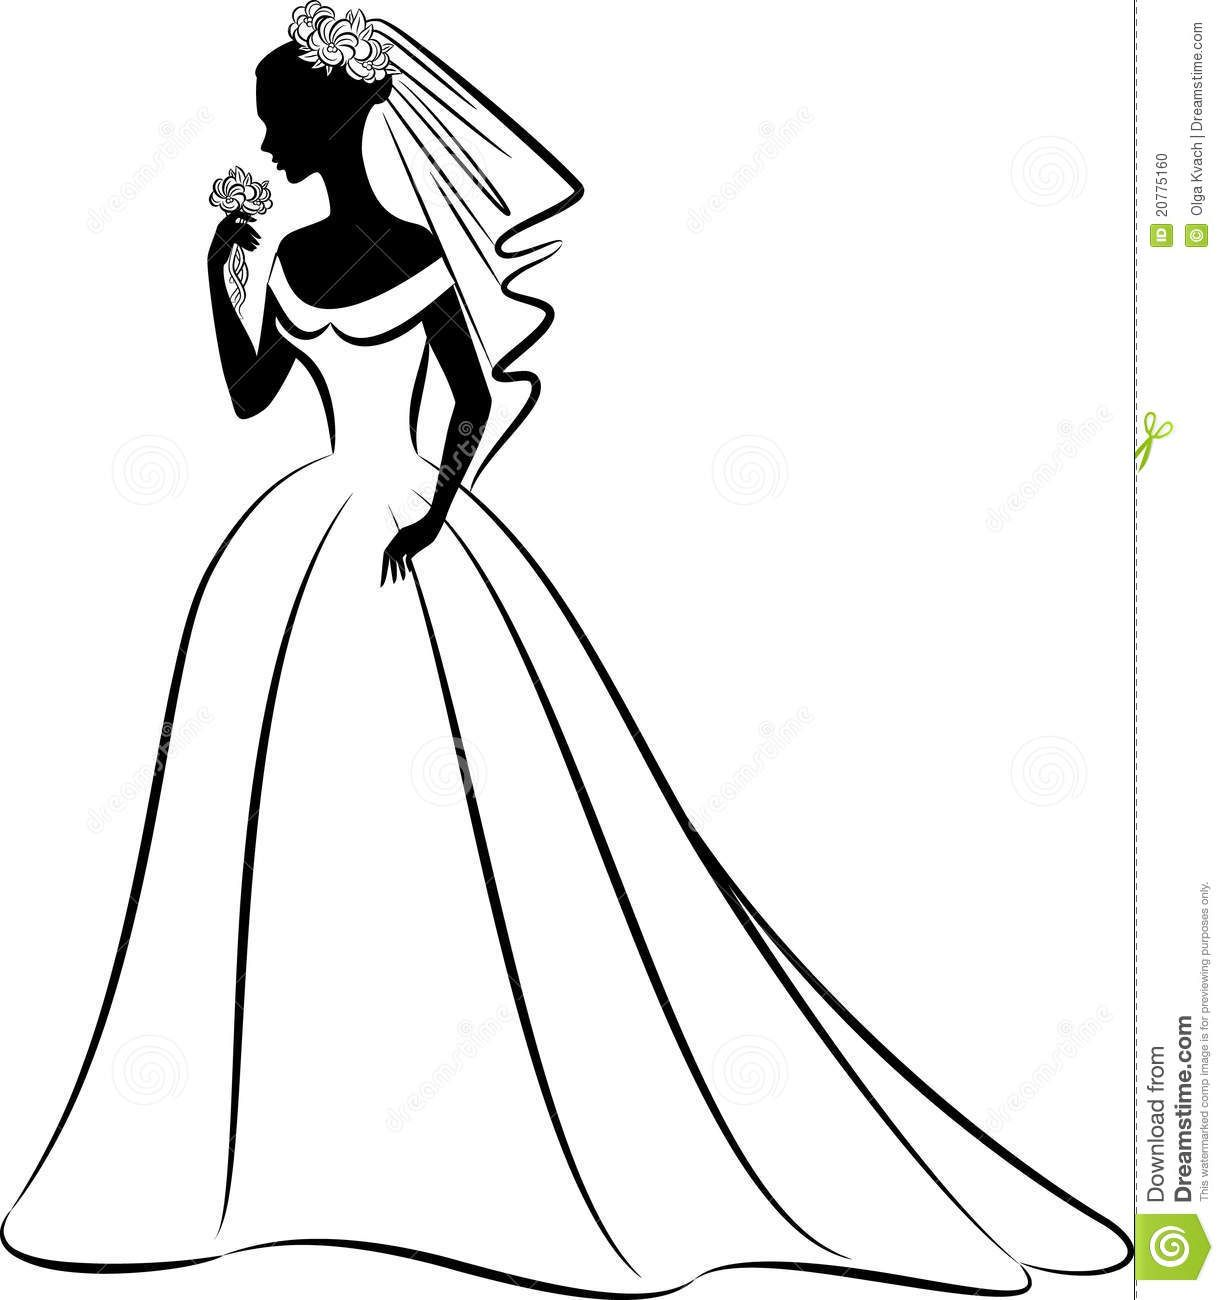 bridal clip art black and whi - Bride Clipart